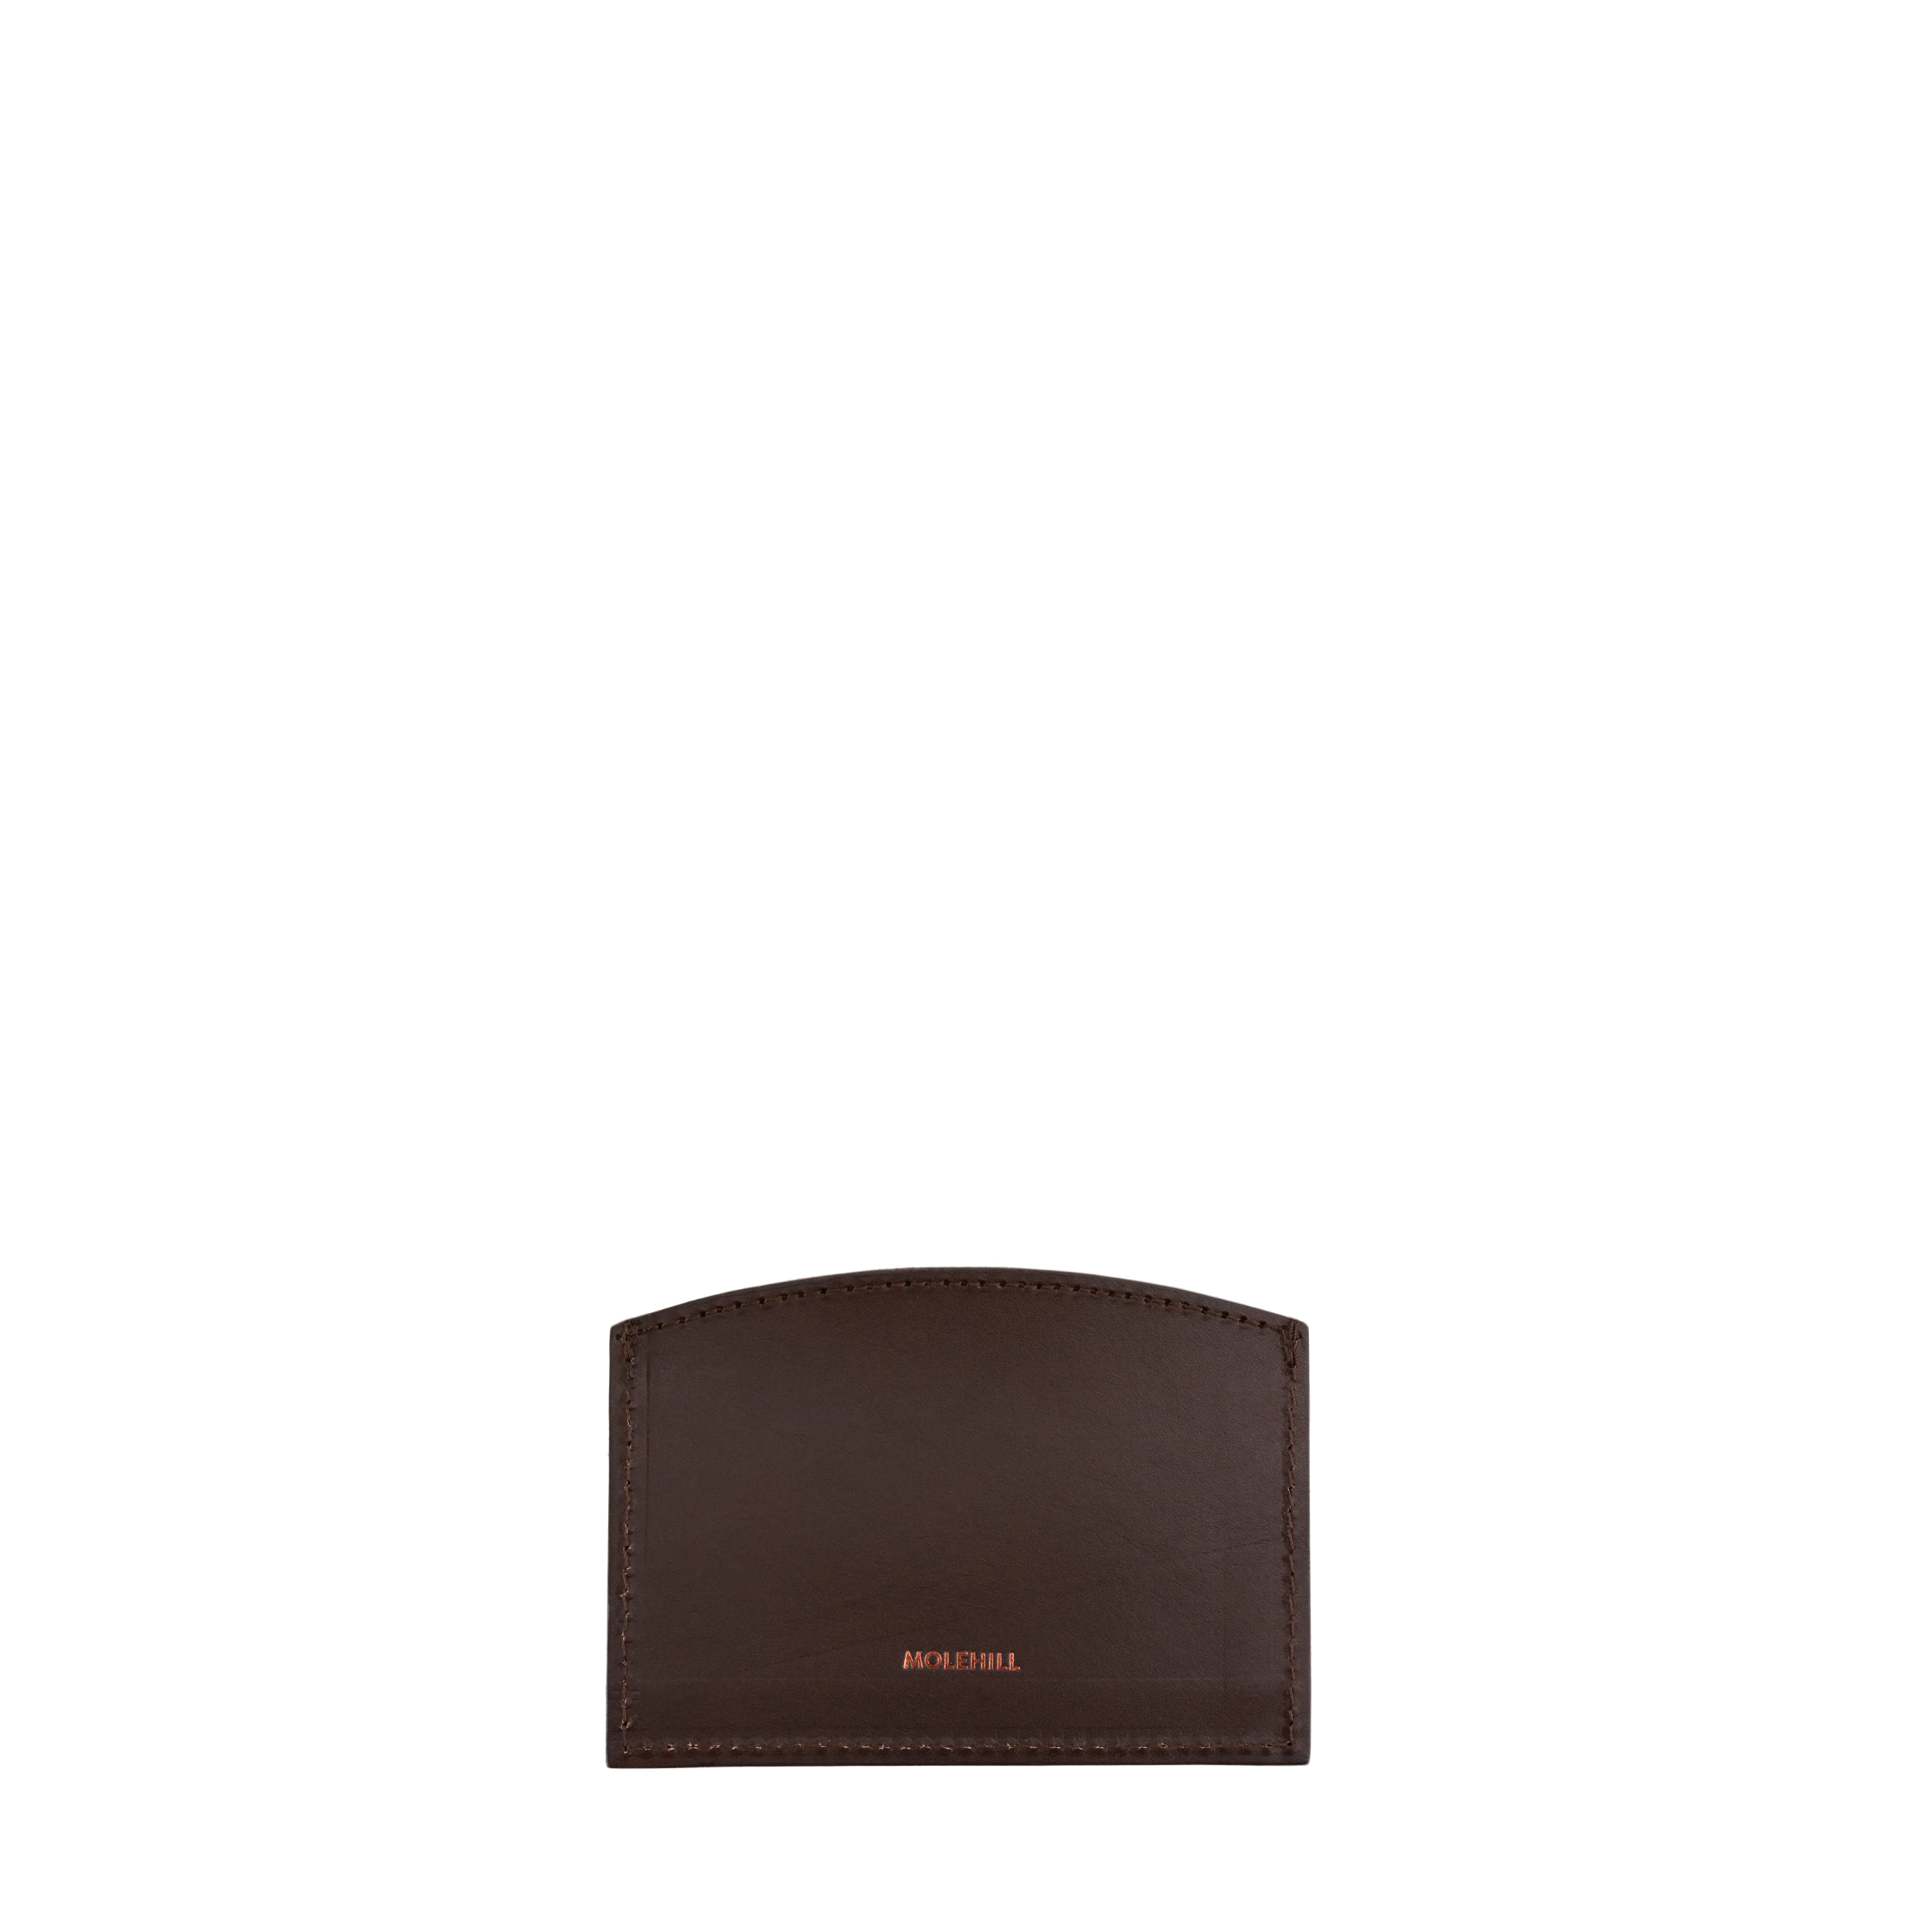 Card-Holder-Dark-Brown-1